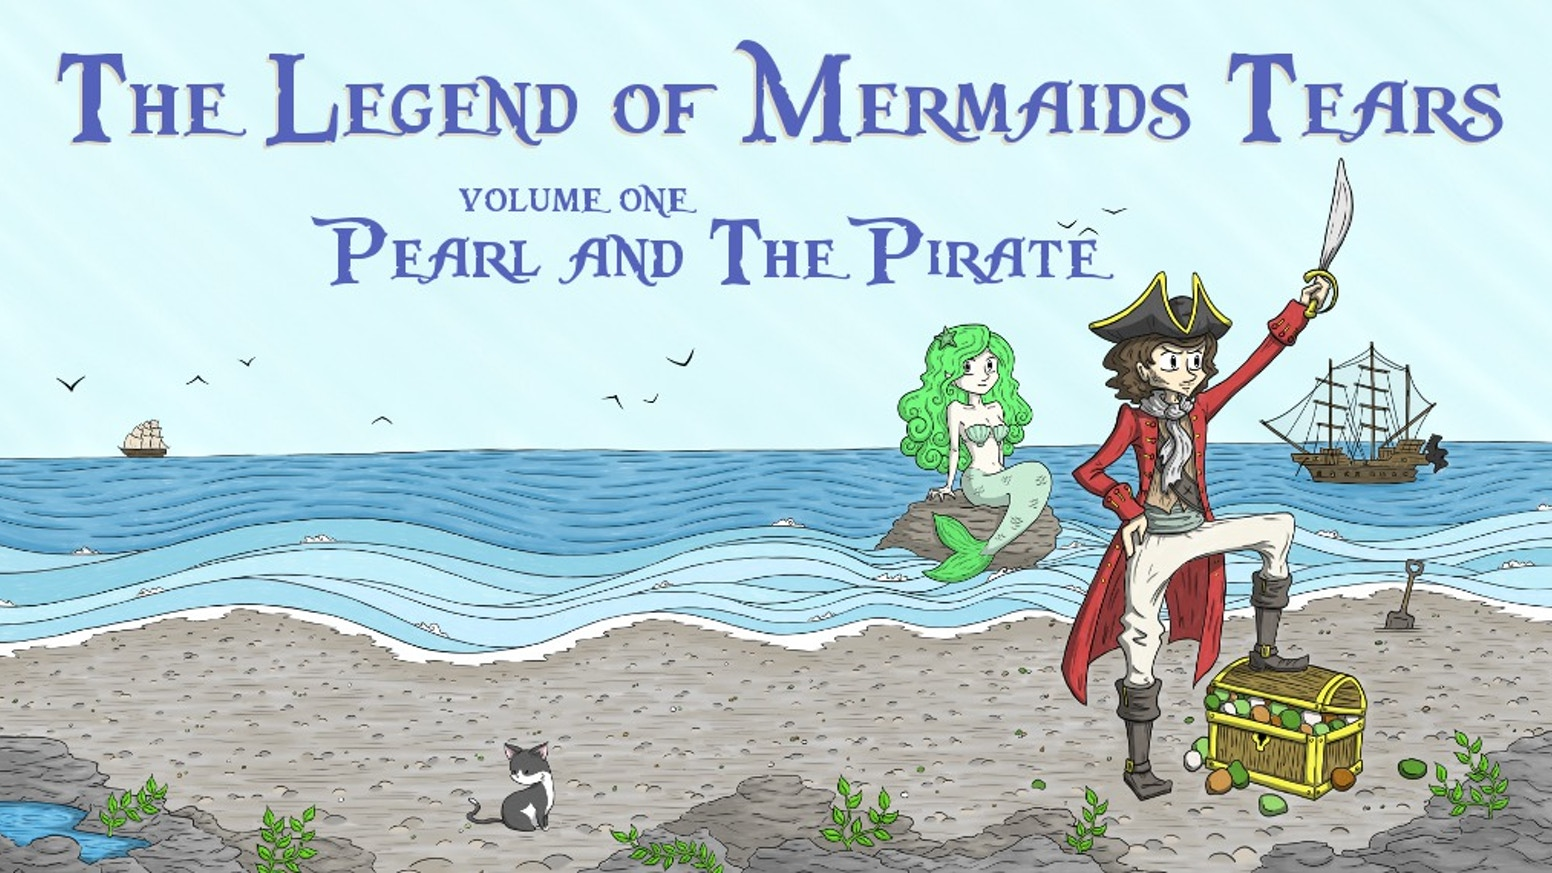 Mermaids Tears are real, so Mermaids must be real too, but what about Pirate ships that appear in the mist? Read the legend...